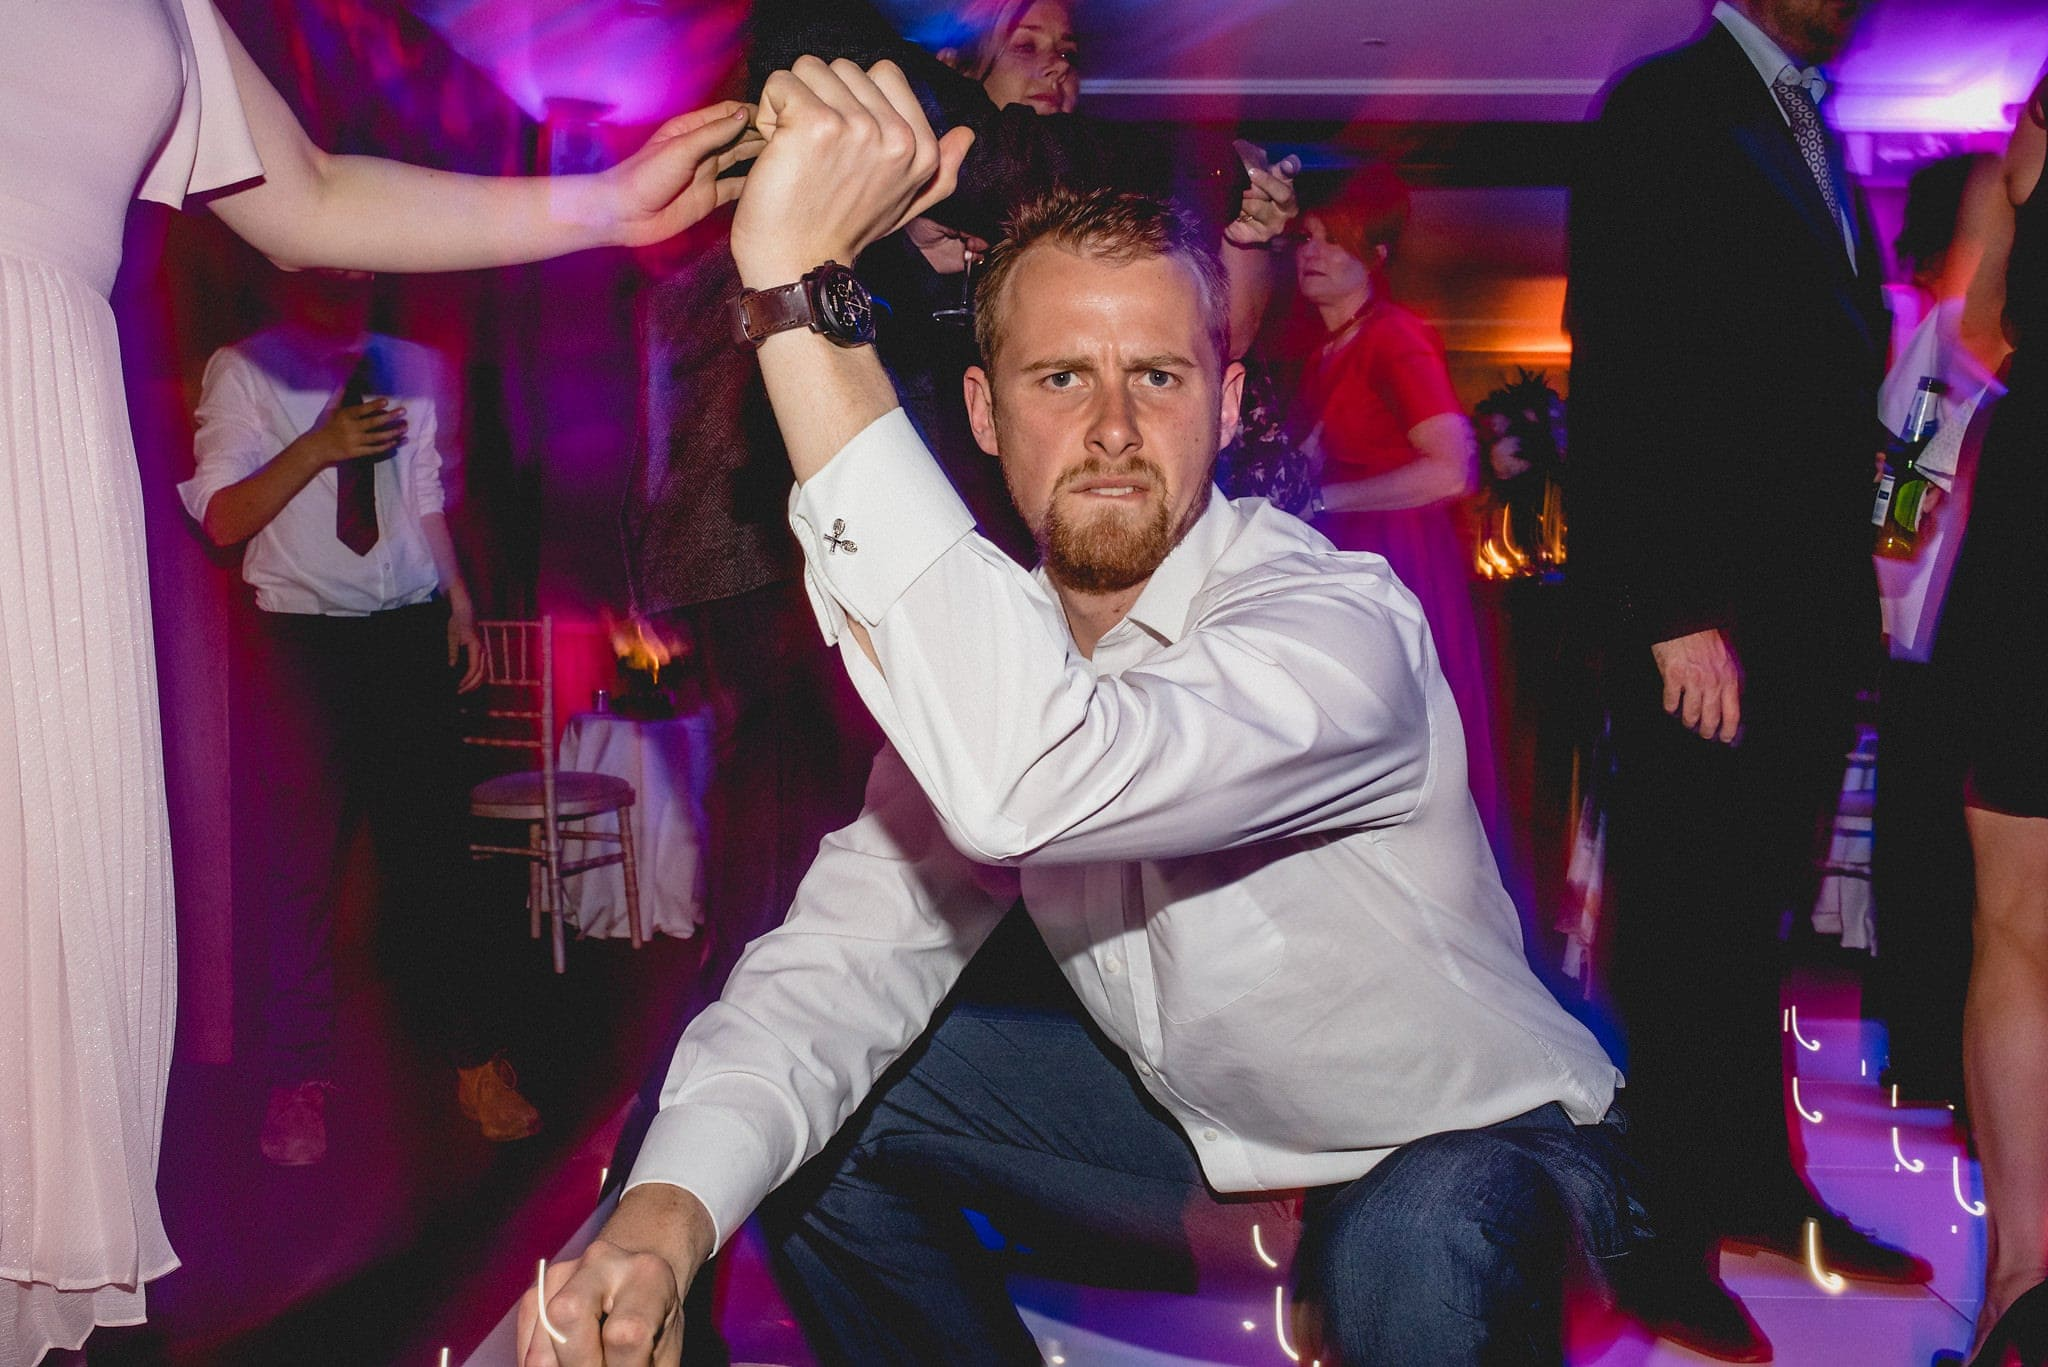 Male wedding guest shows off his moves on the dance floor